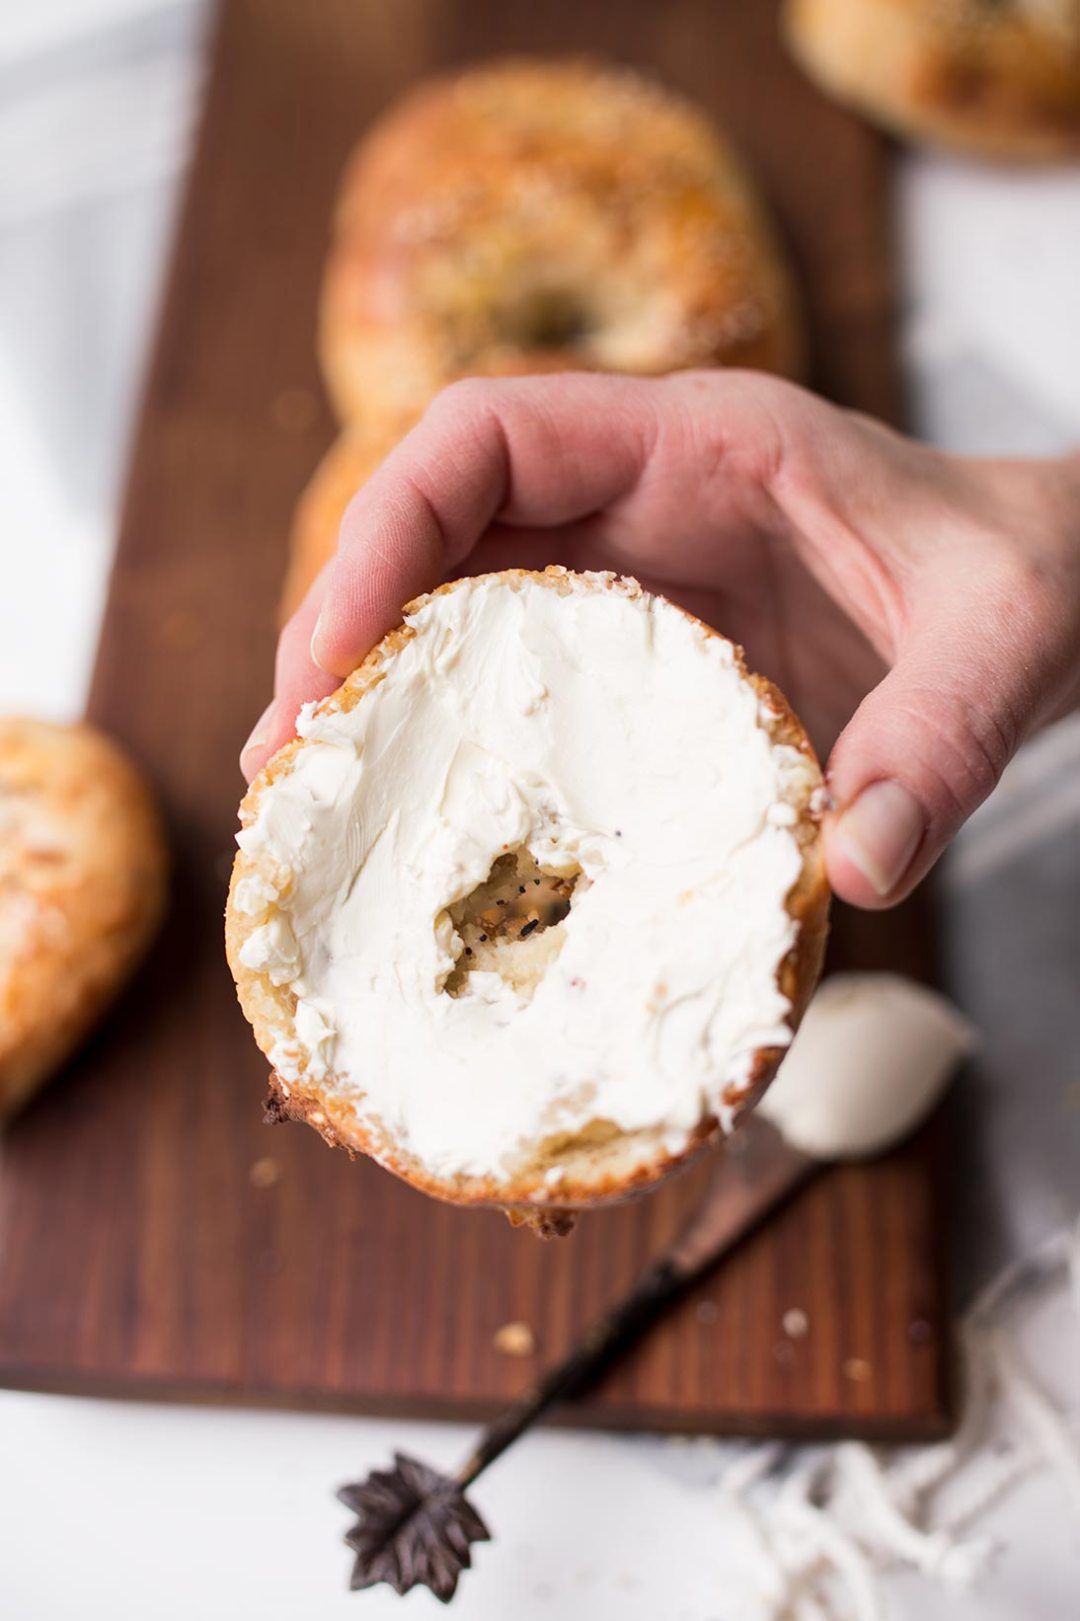 """Grain-Free Everything Bagels - you can still get the savory taste of """"everything bagels"""" but without the grains! Paleo and gluten free, but you'd never know it!"""